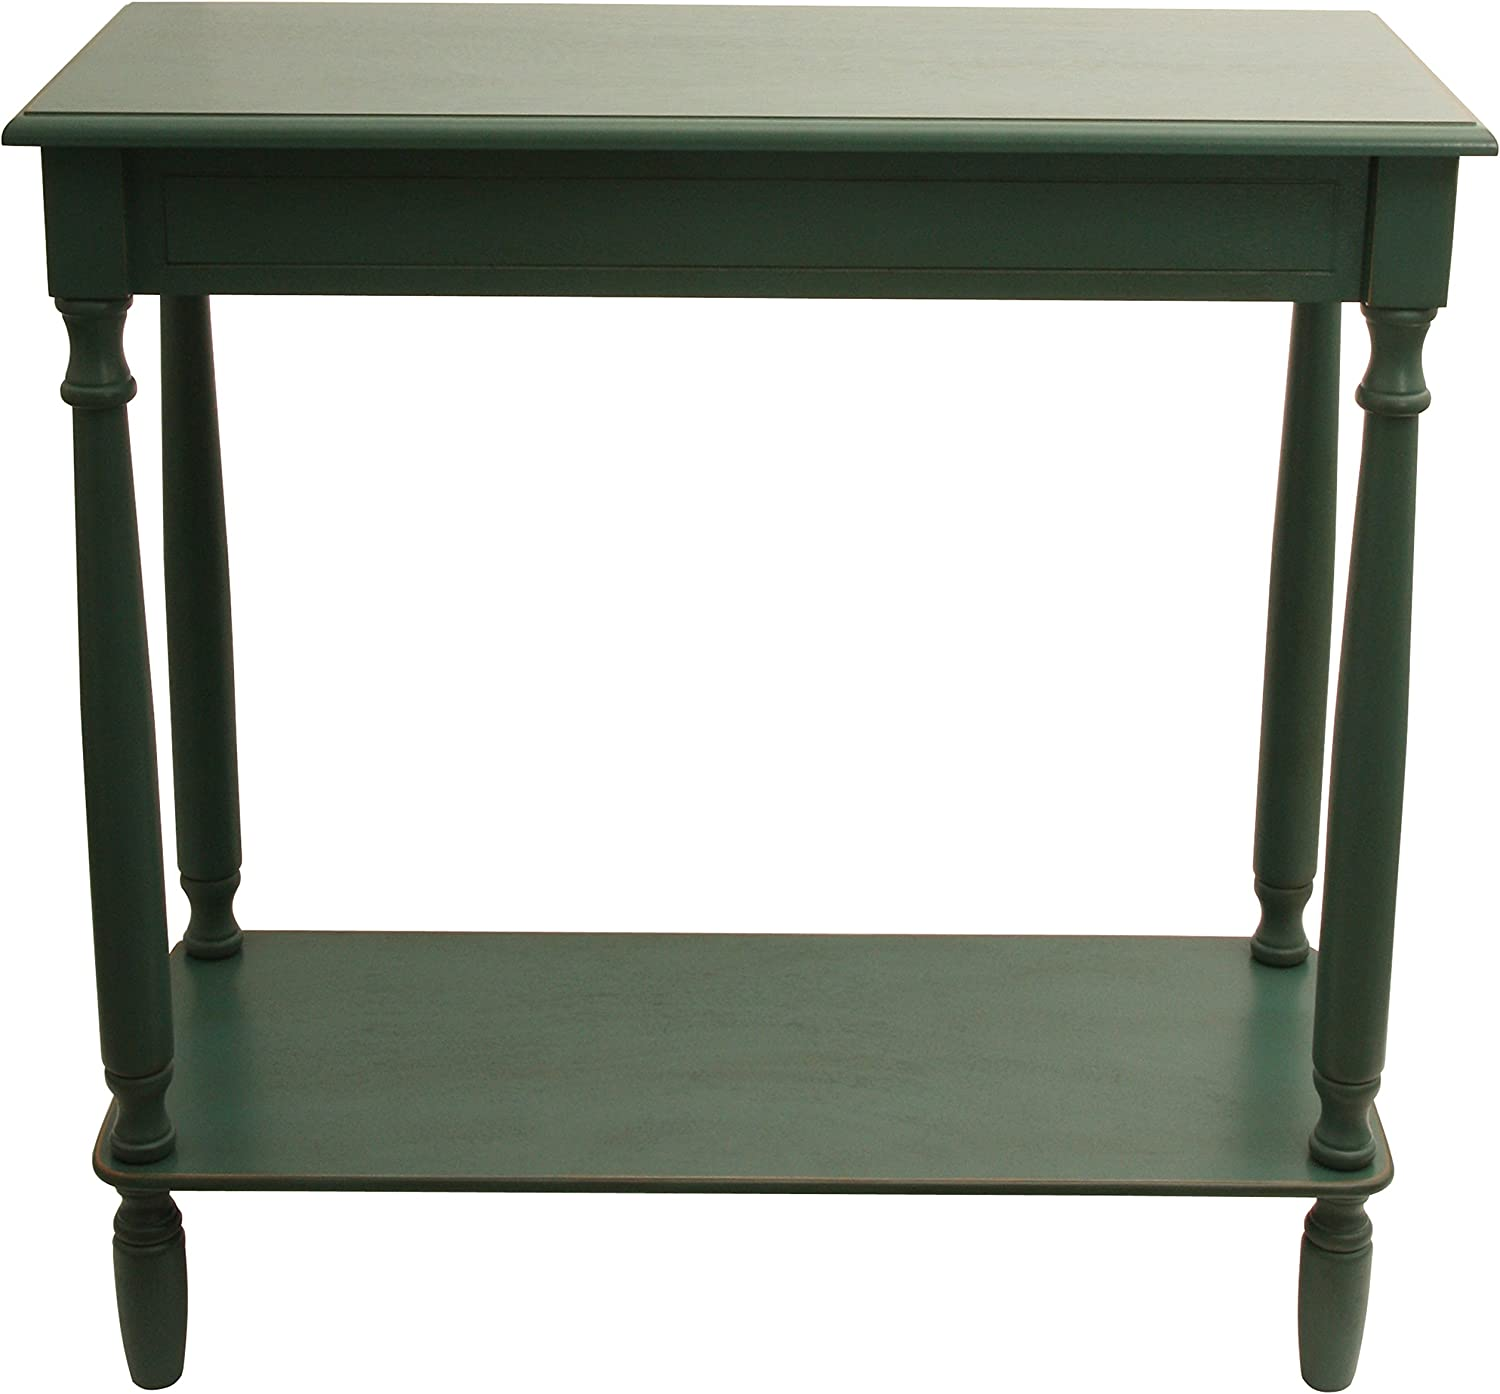 Décor Therapy Antique Teal Rectangle Console